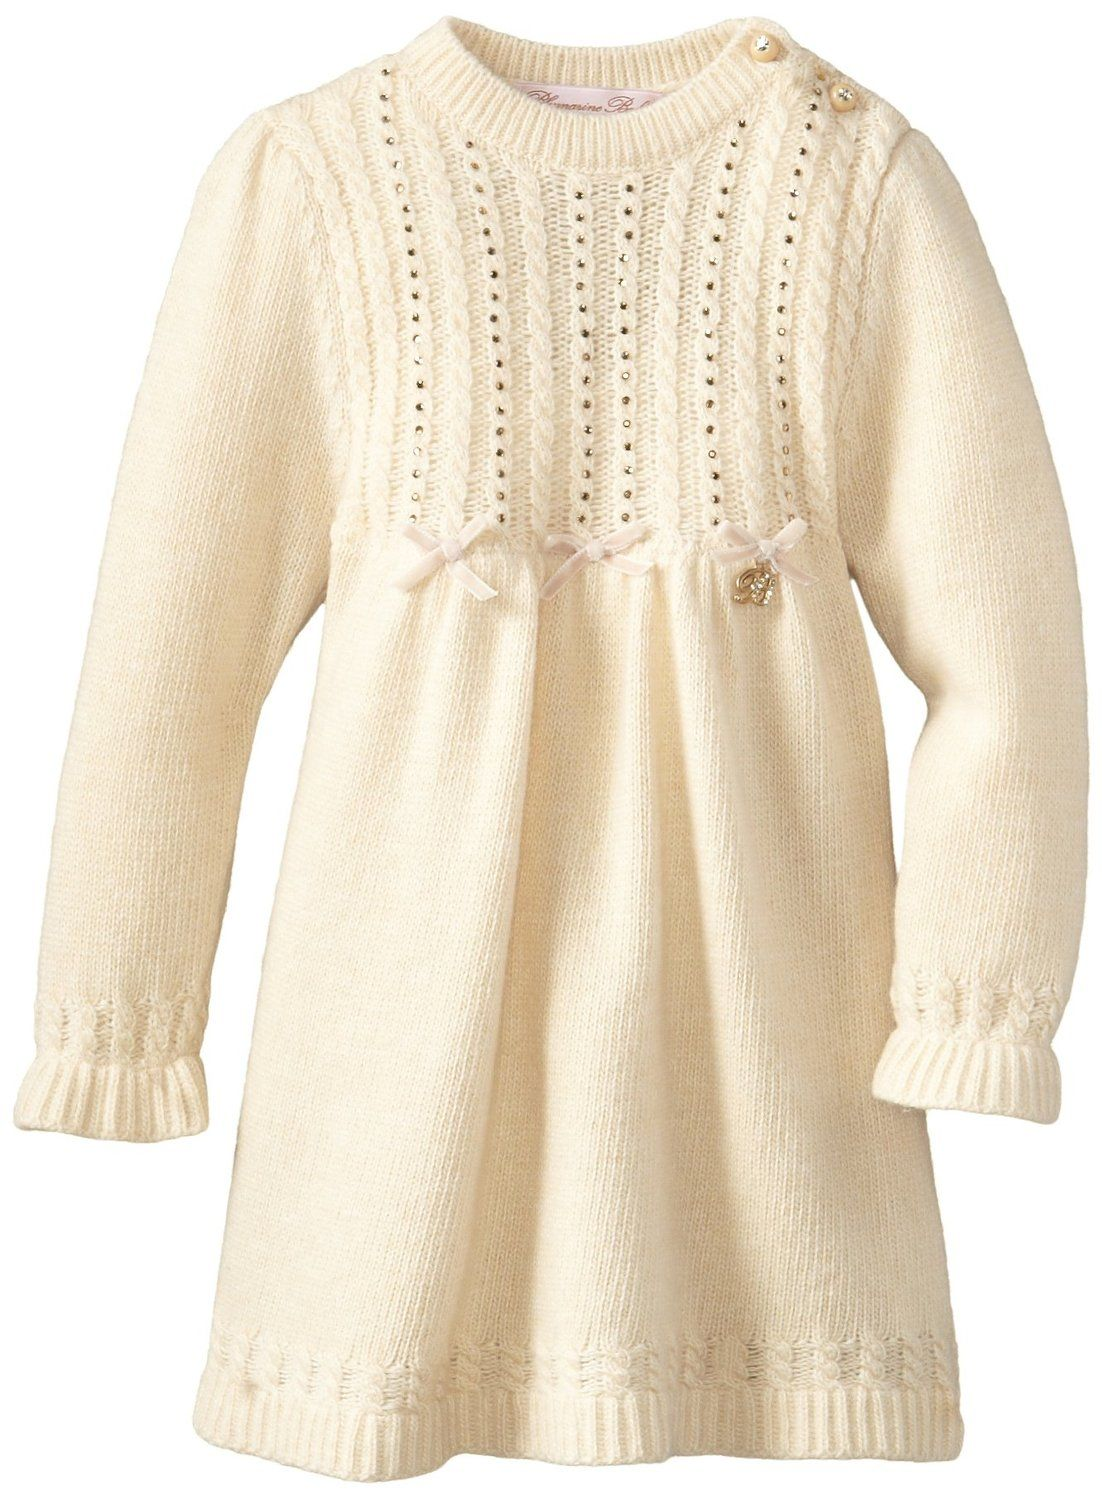 Industries Needs — Baby› Up to 80% off › Baby Girls› Dresses